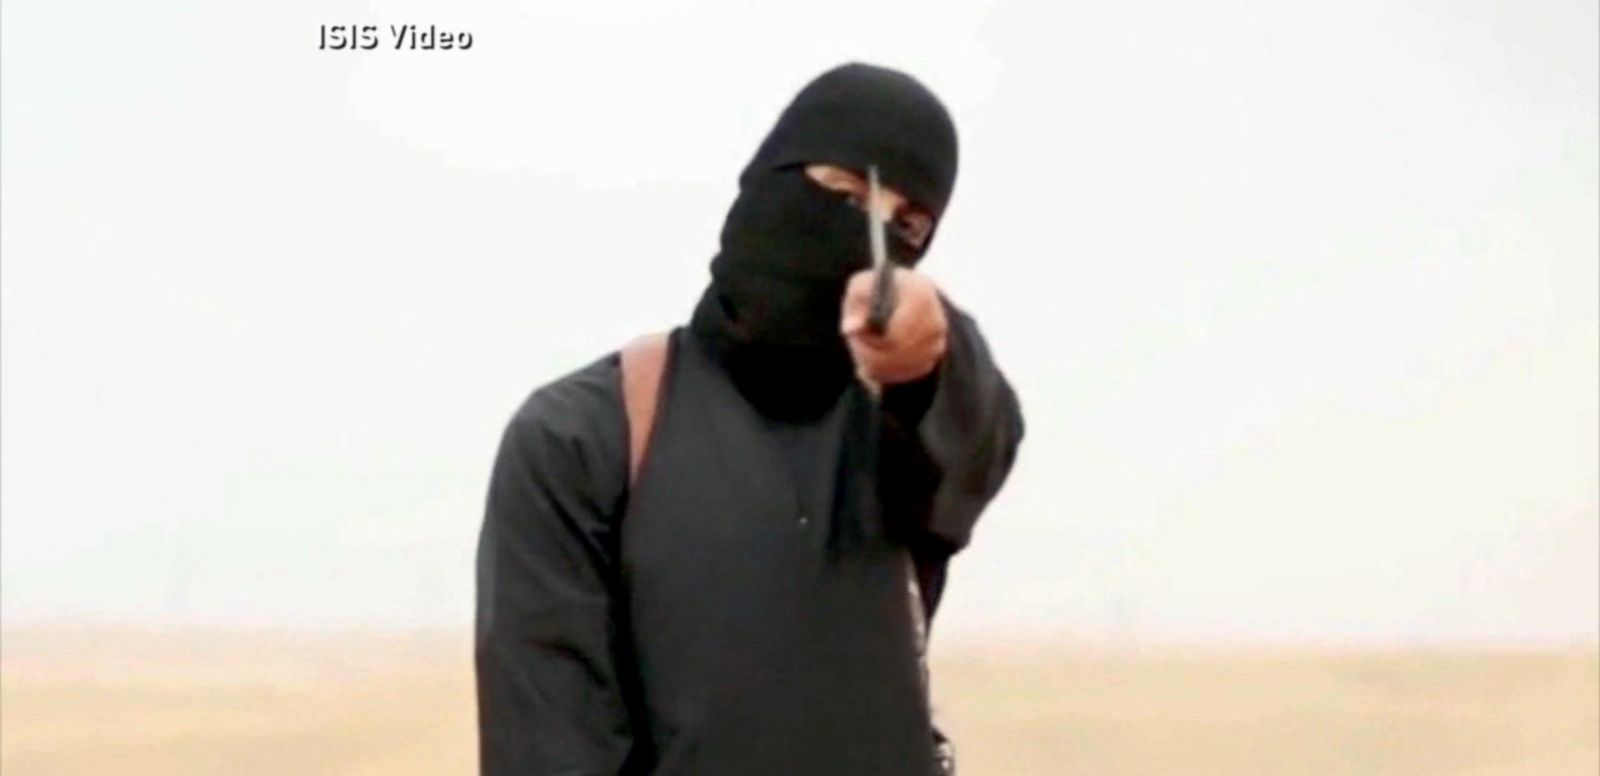 VIDEO: 'Jihadi John' Now the Most Wanted Man In the World